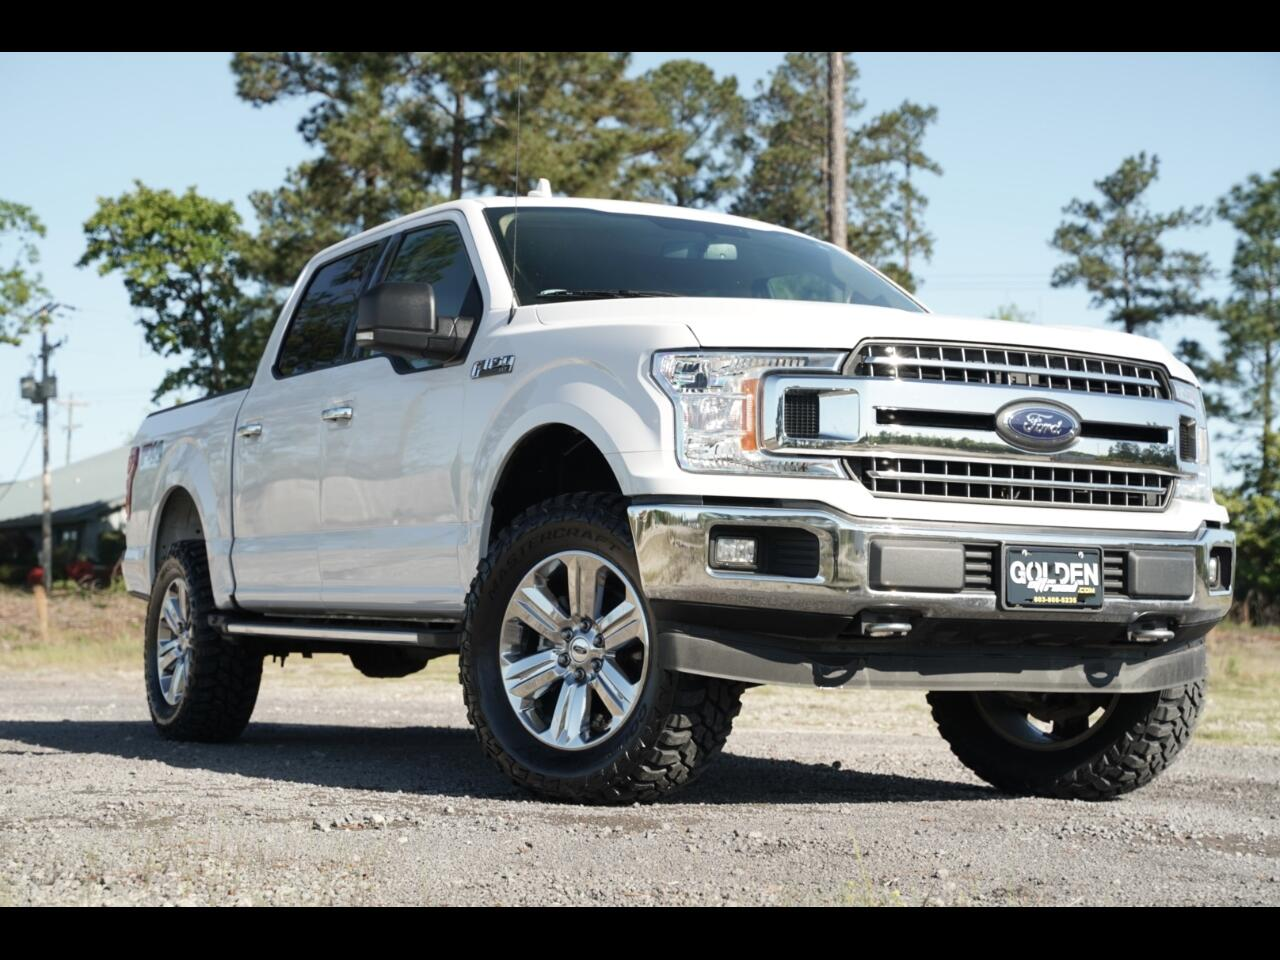 2018 Ford F-150 FX4 Lifted Crew Cab 4wd 5.0L Hurry!!!